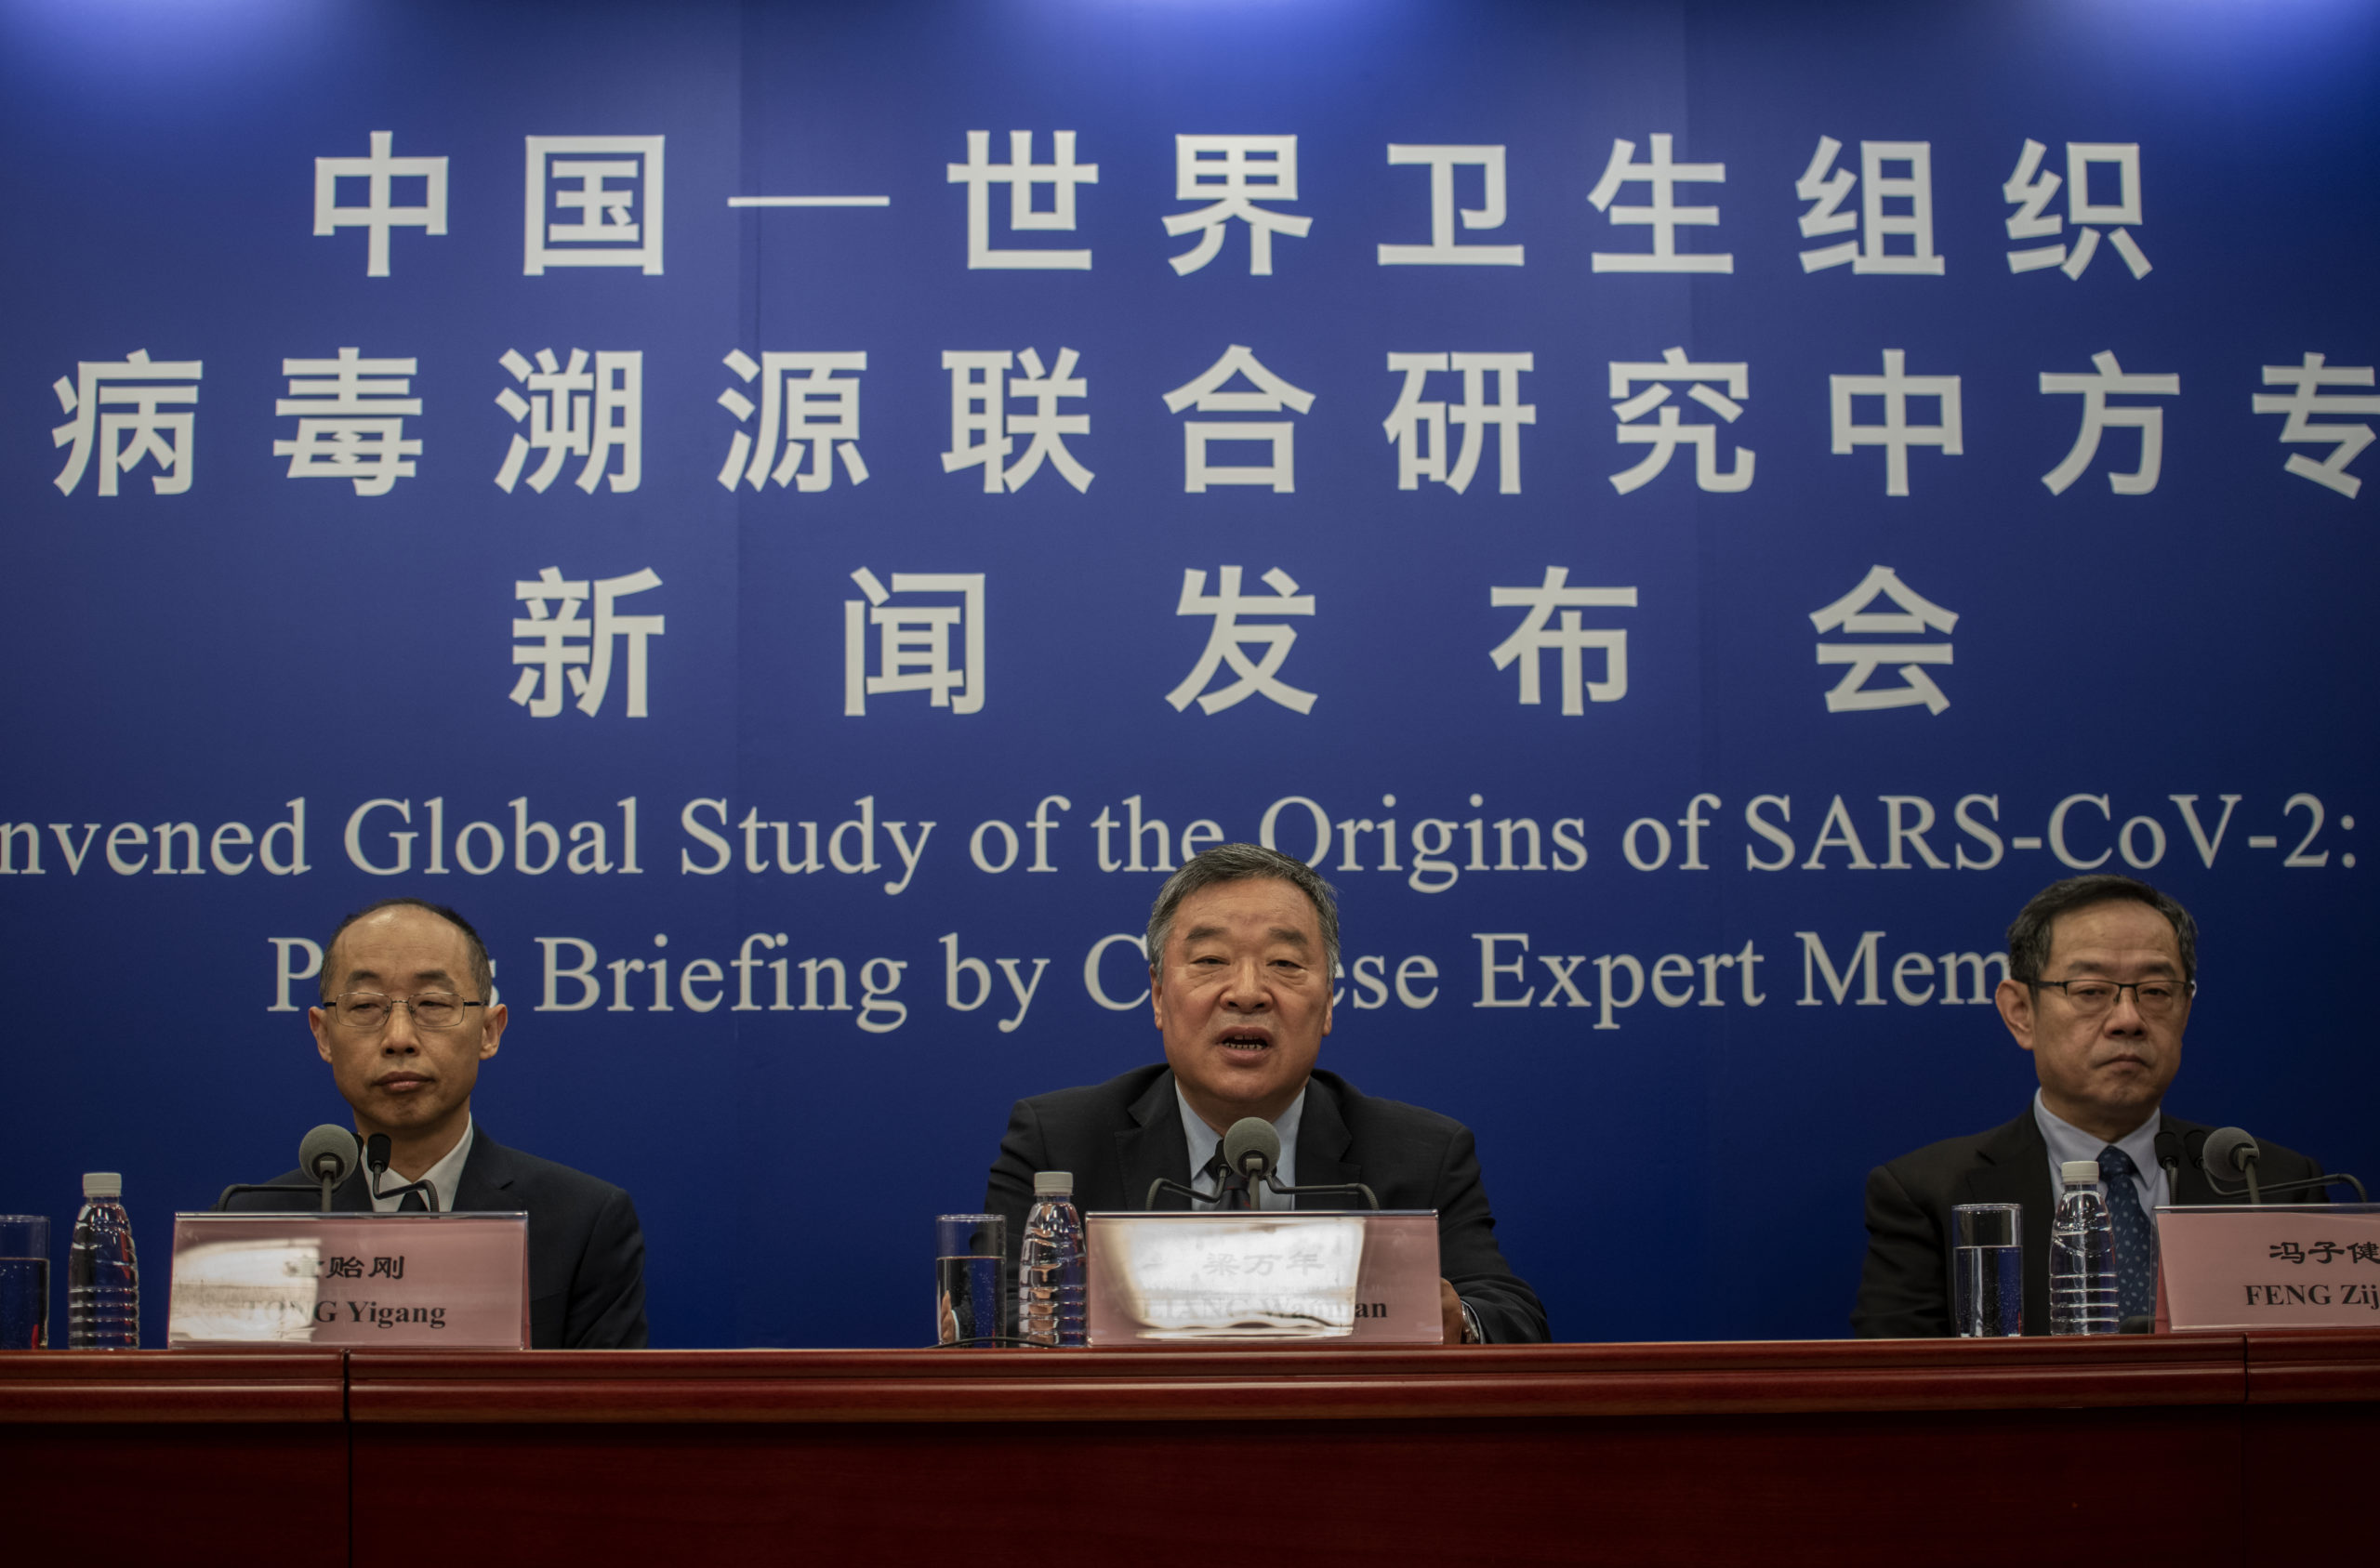 BEIJING, CHINA - MARCH 31: Head of the Expert Group on Covid Response at China's National Health Commission Liang Wannian, center, answers a question as Tong Yigang, left, and Feng Zijian, right, listen during a press conference addressing the World Health Organization (WHO) report on the origins of SARS-CoV-2, at the National Health Committee on March 31, 2021 in Beijing, China. (Kevin Frayer/Getty Images)